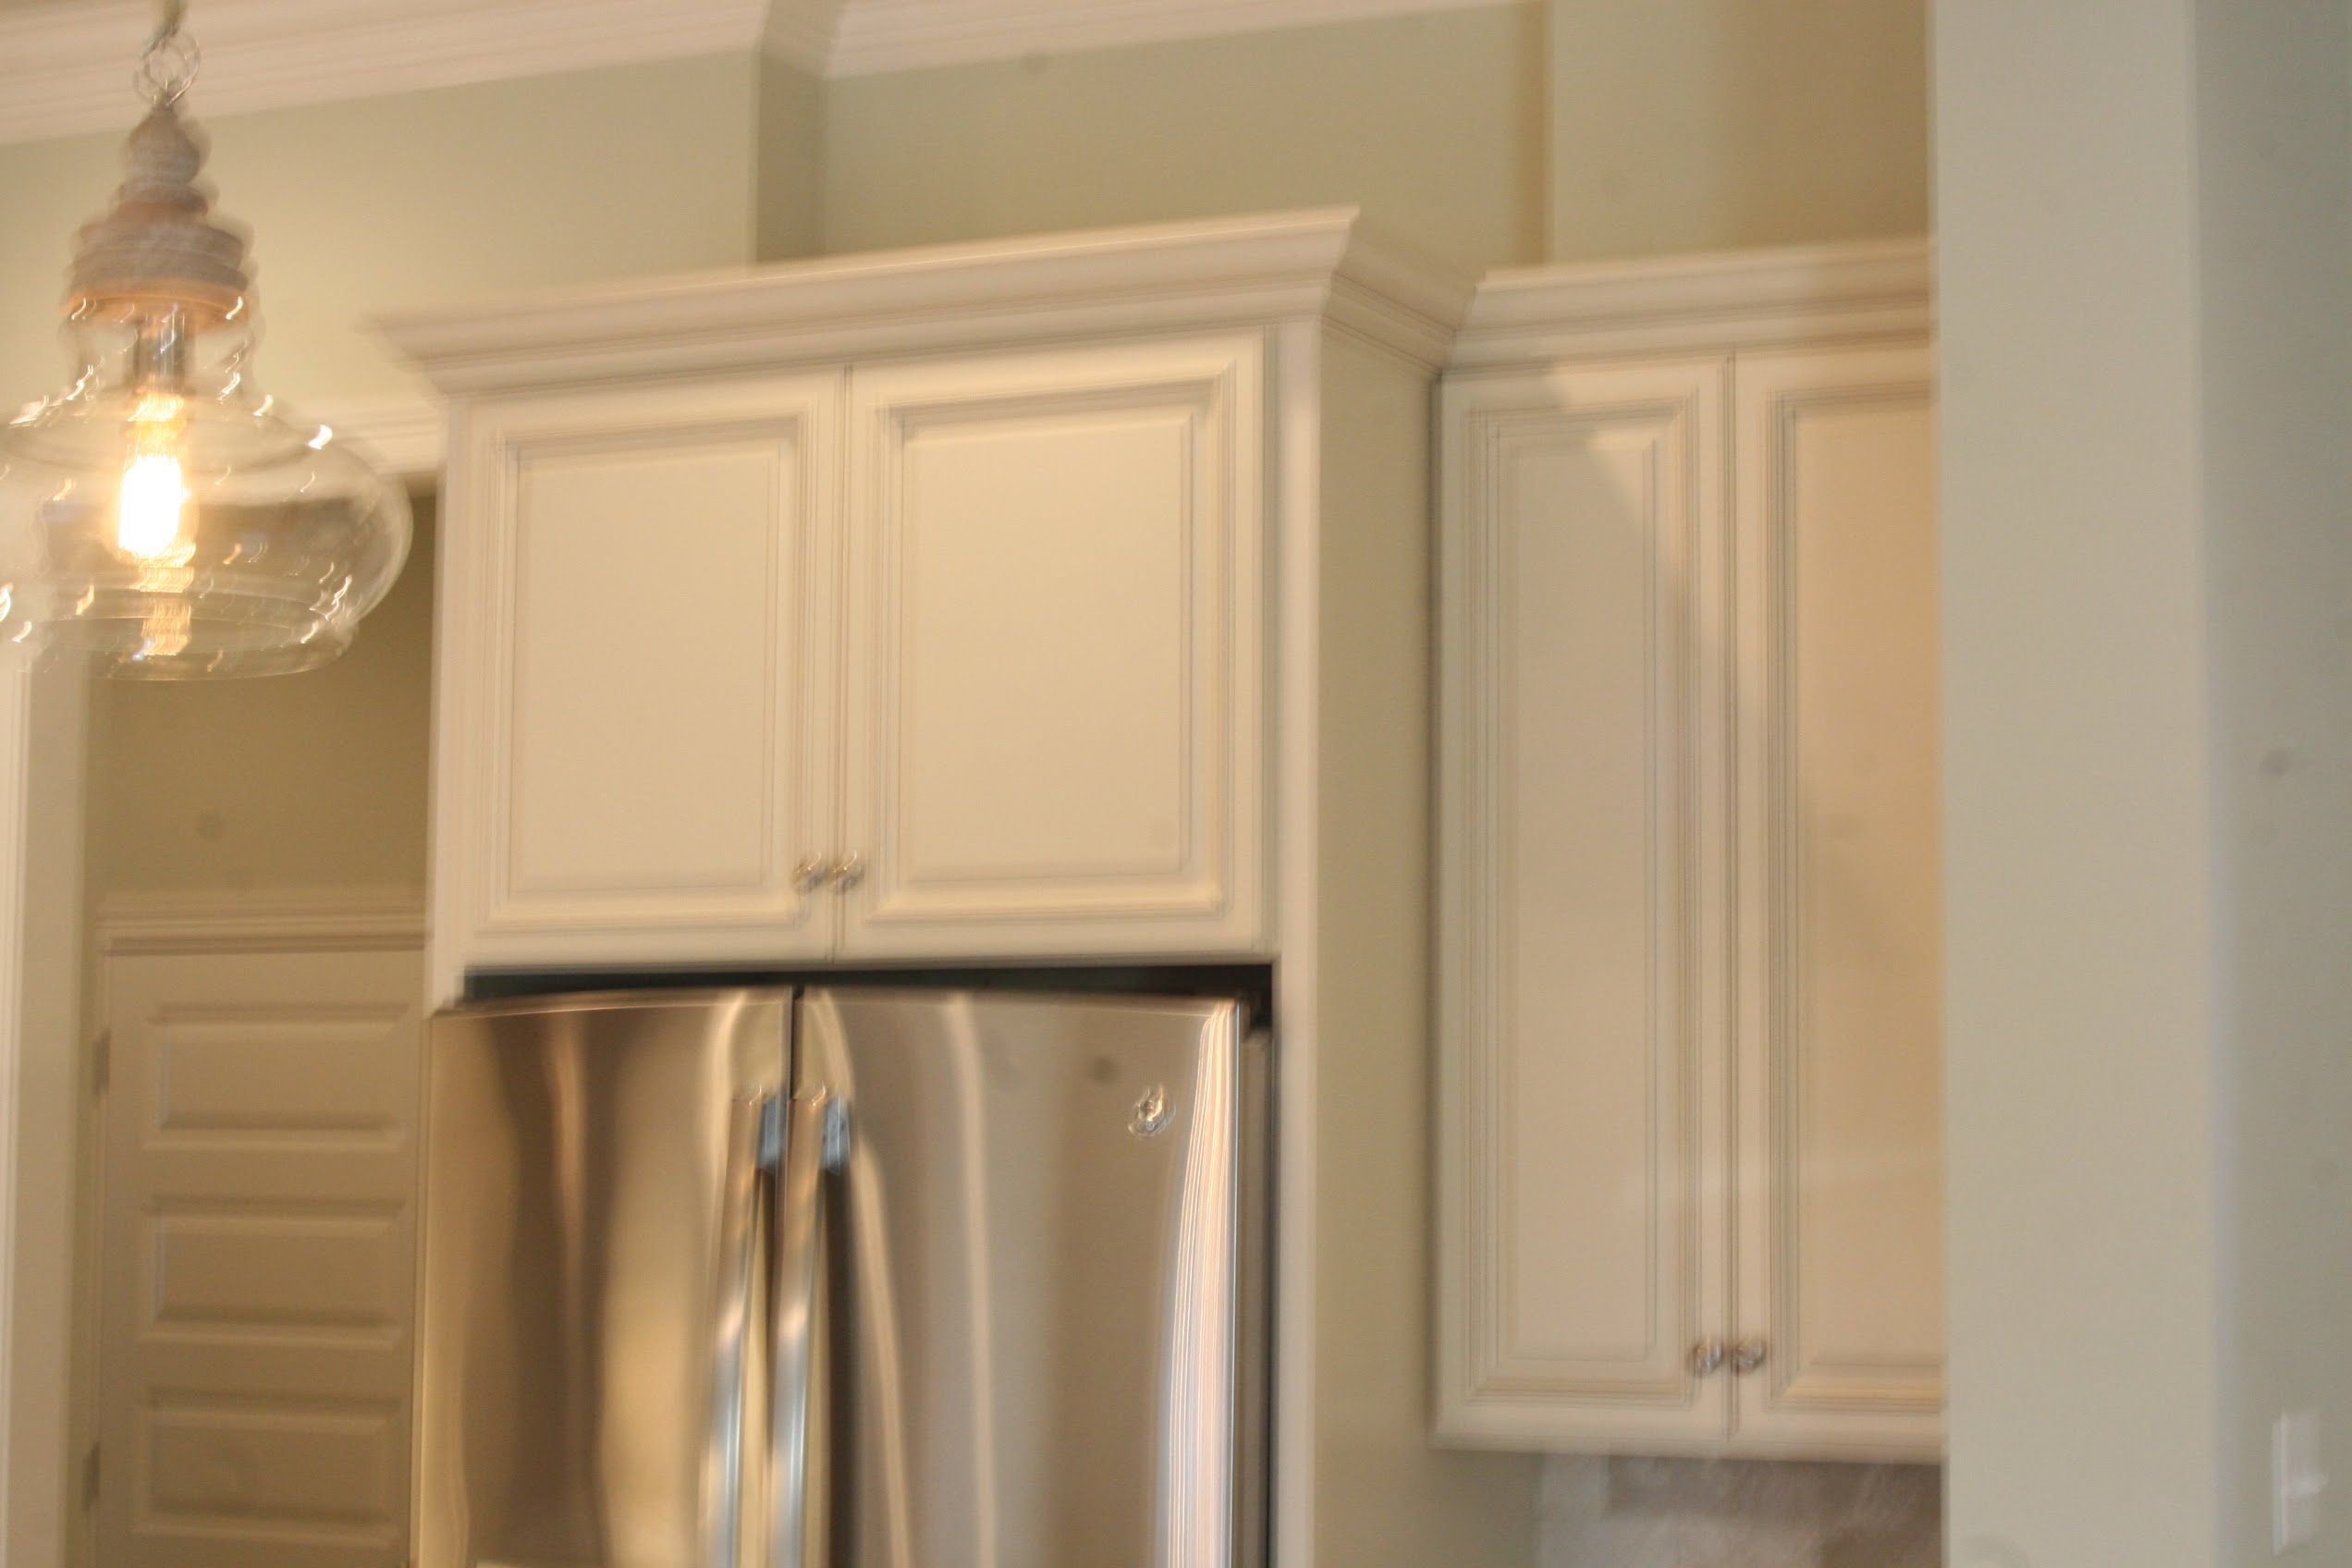 How To Install Refrigerator Panels Refrigerator Panels Installing Kitchen Cabinets Kitchen Cabinets